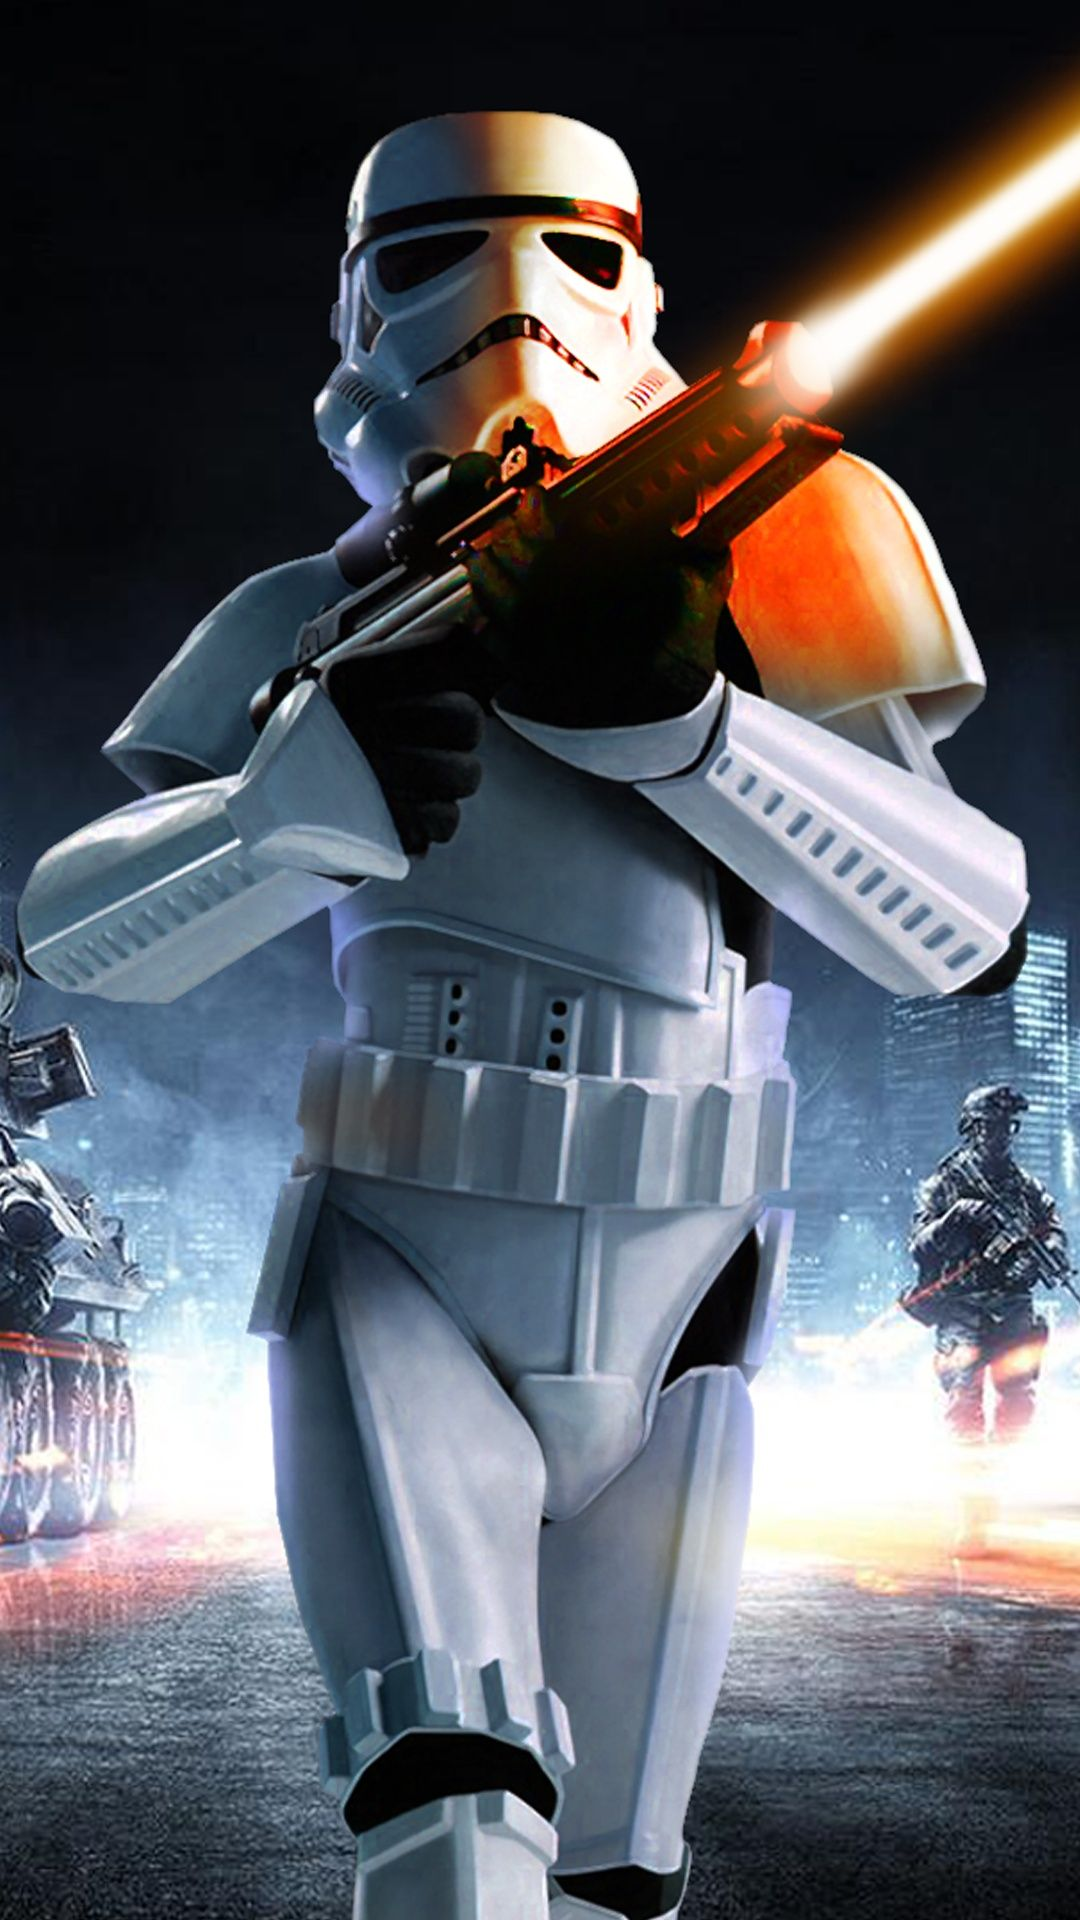 Wallpapers Stormtrooper Star Wars Wallpapers Is Available For Free